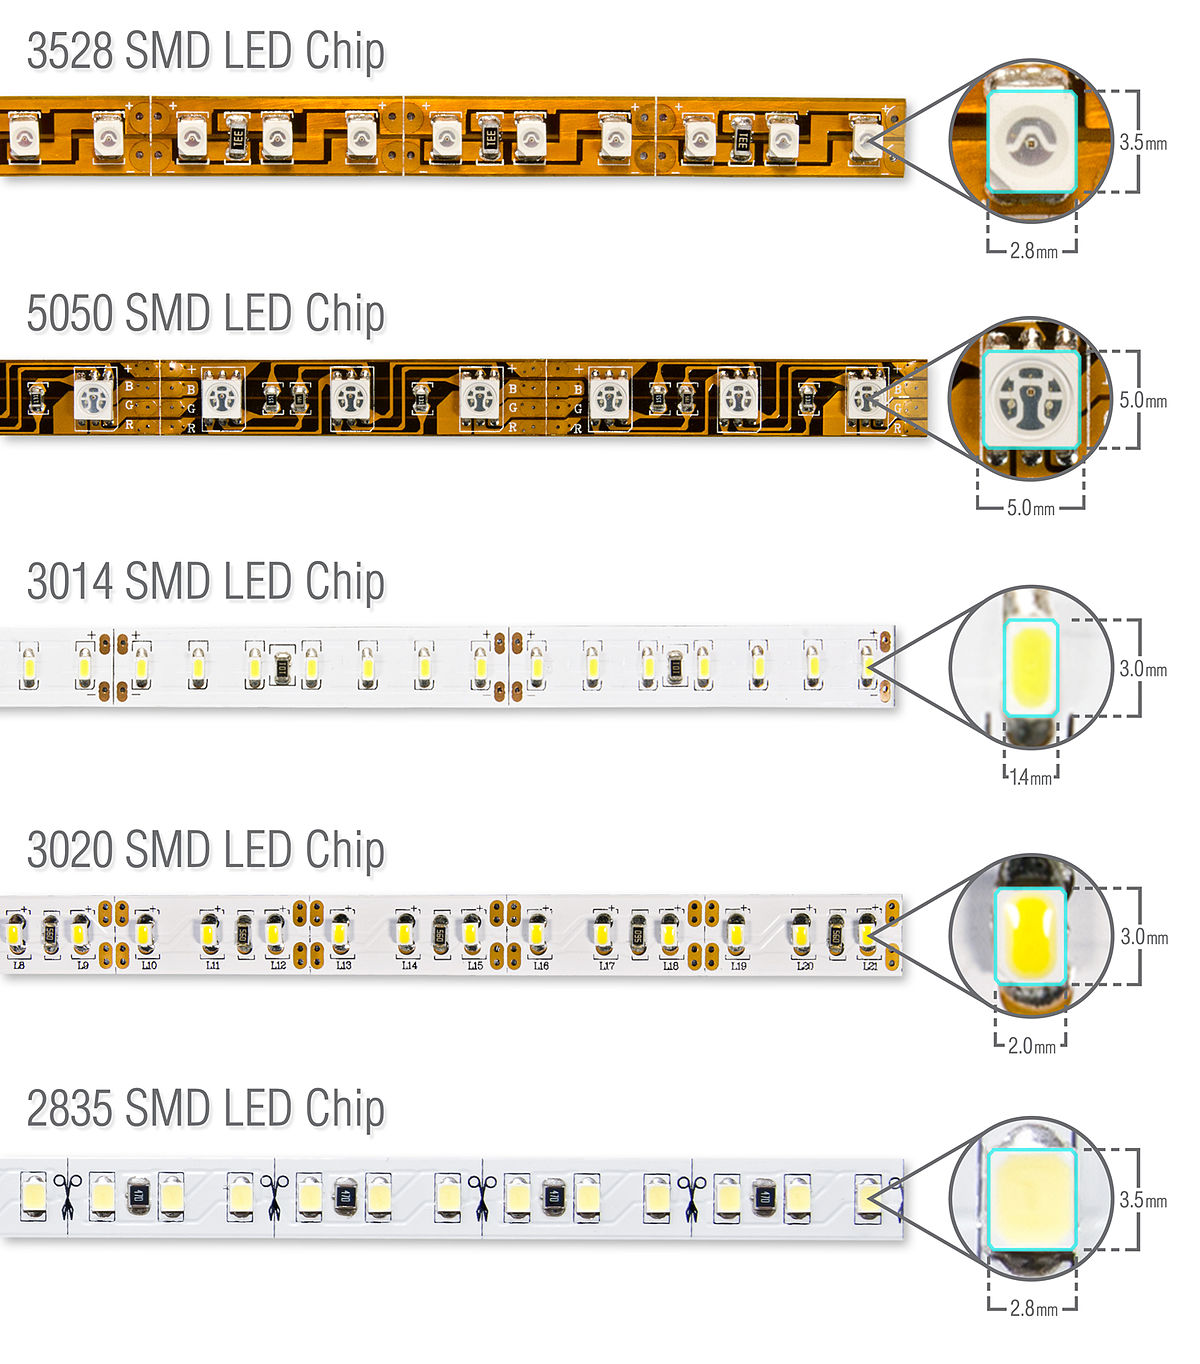 1200px SMD LED comparison 5050 2835 3528 3014 Flexfireleds led strip light wikipedia 5050 Matamoros at mifinder.co